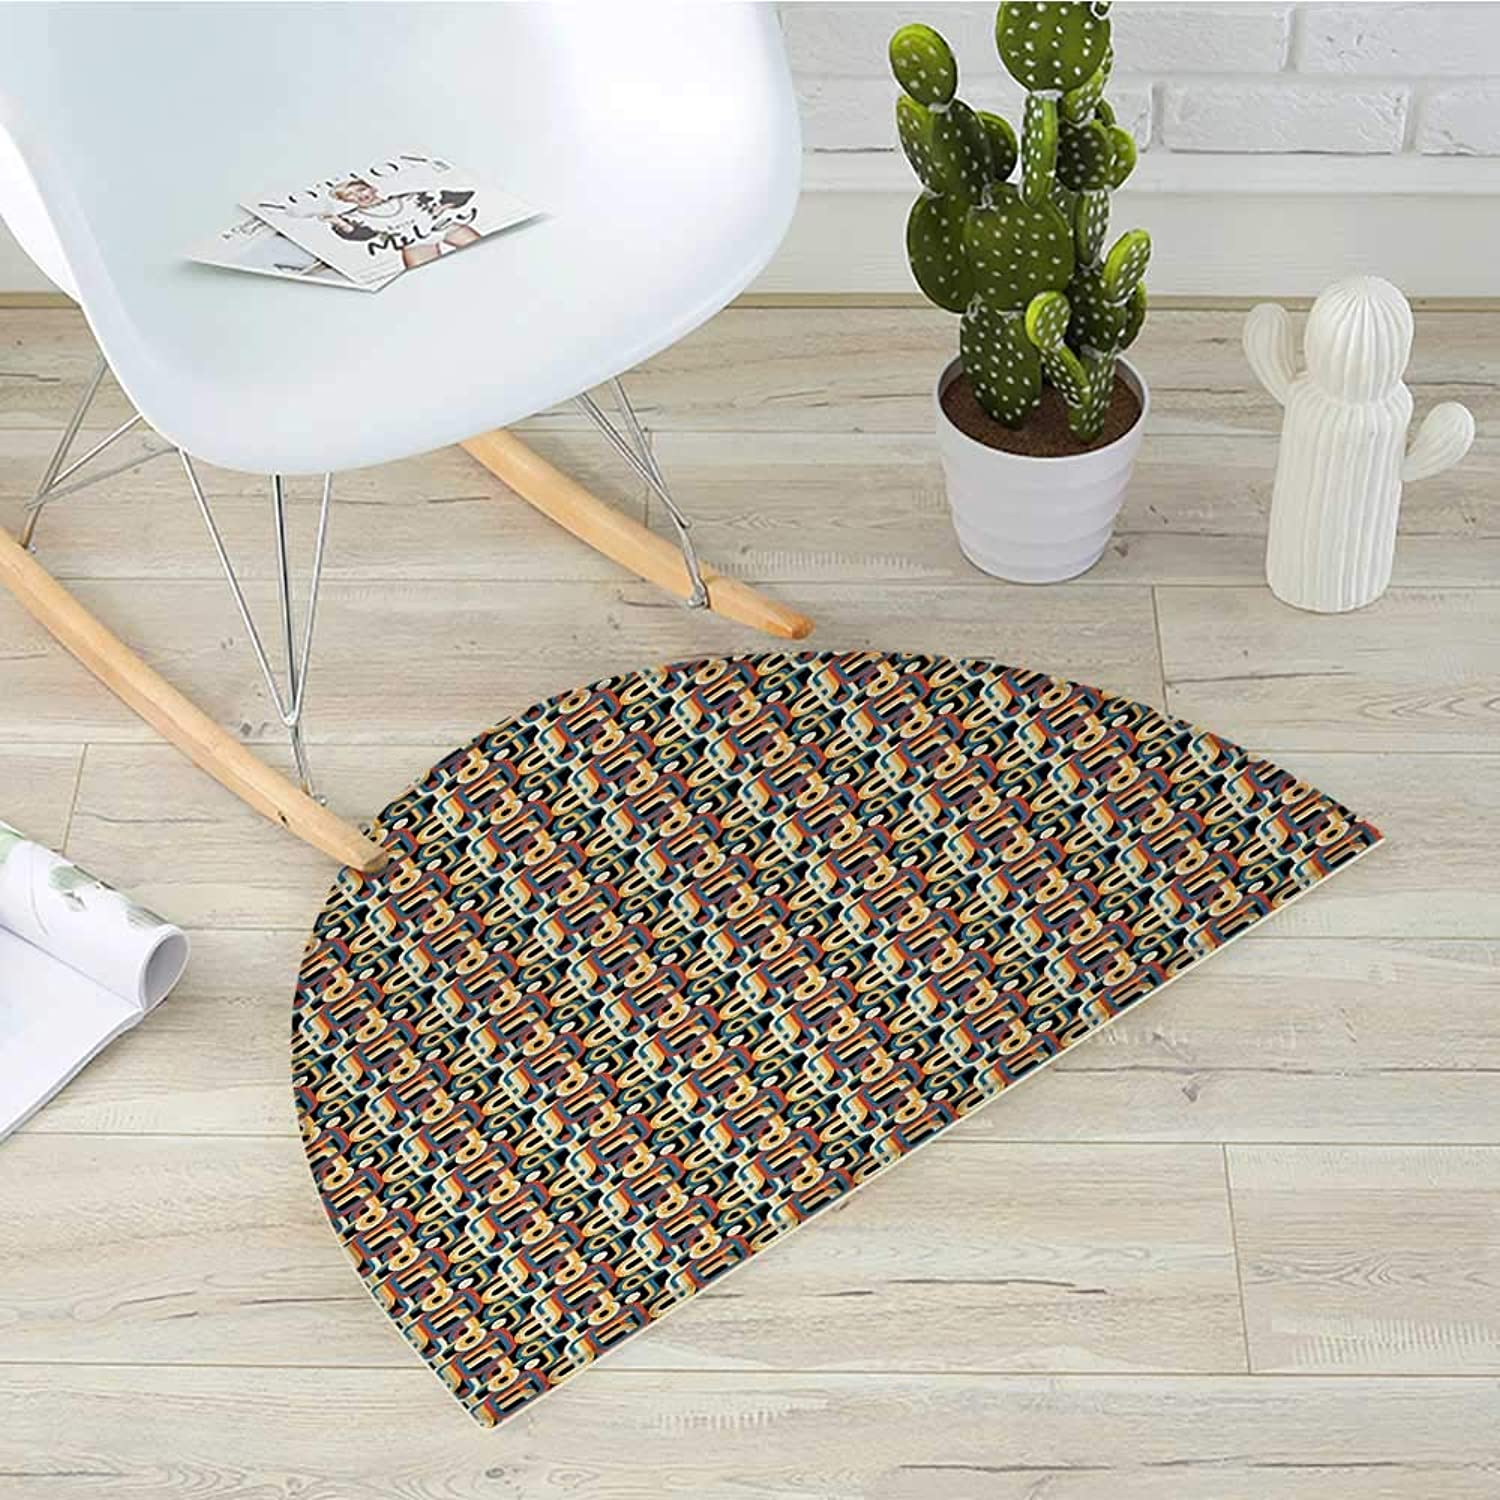 Retro Half Round Door mats Geometric colorful Stripes with Circles Abstract Vintage Ornate Curved Illustration Bathroom Mat H 39.3  xD 59  Multicolor